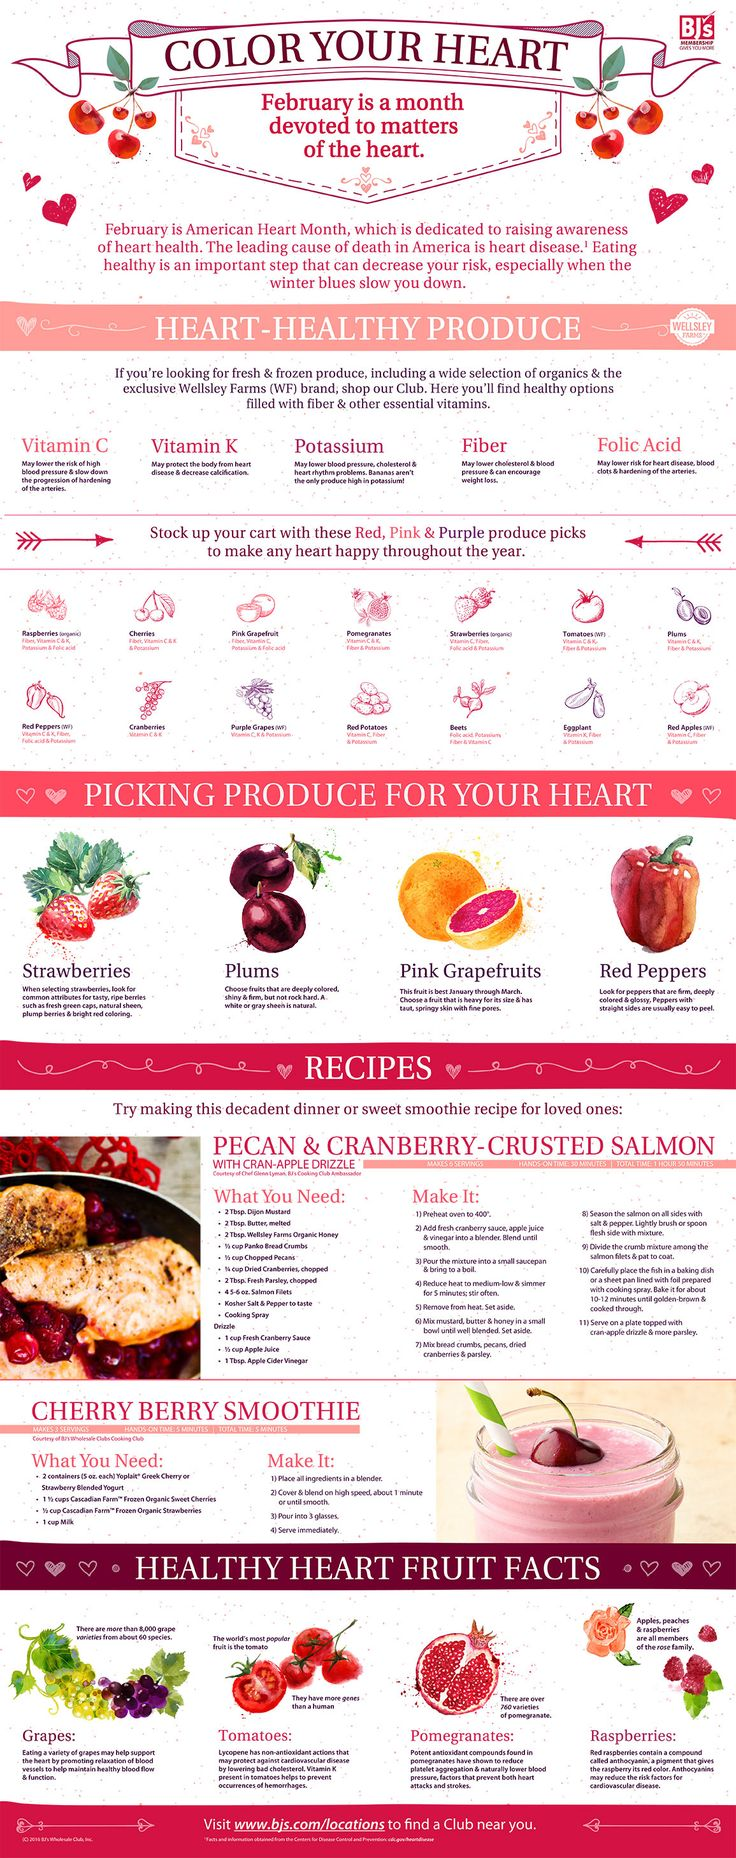 BJ's Color Your Heart Infographic for Heart Health Month with a recipe for a Cherry Berry Smoothie and Pecan & Cranberry-Crusted Salmon.